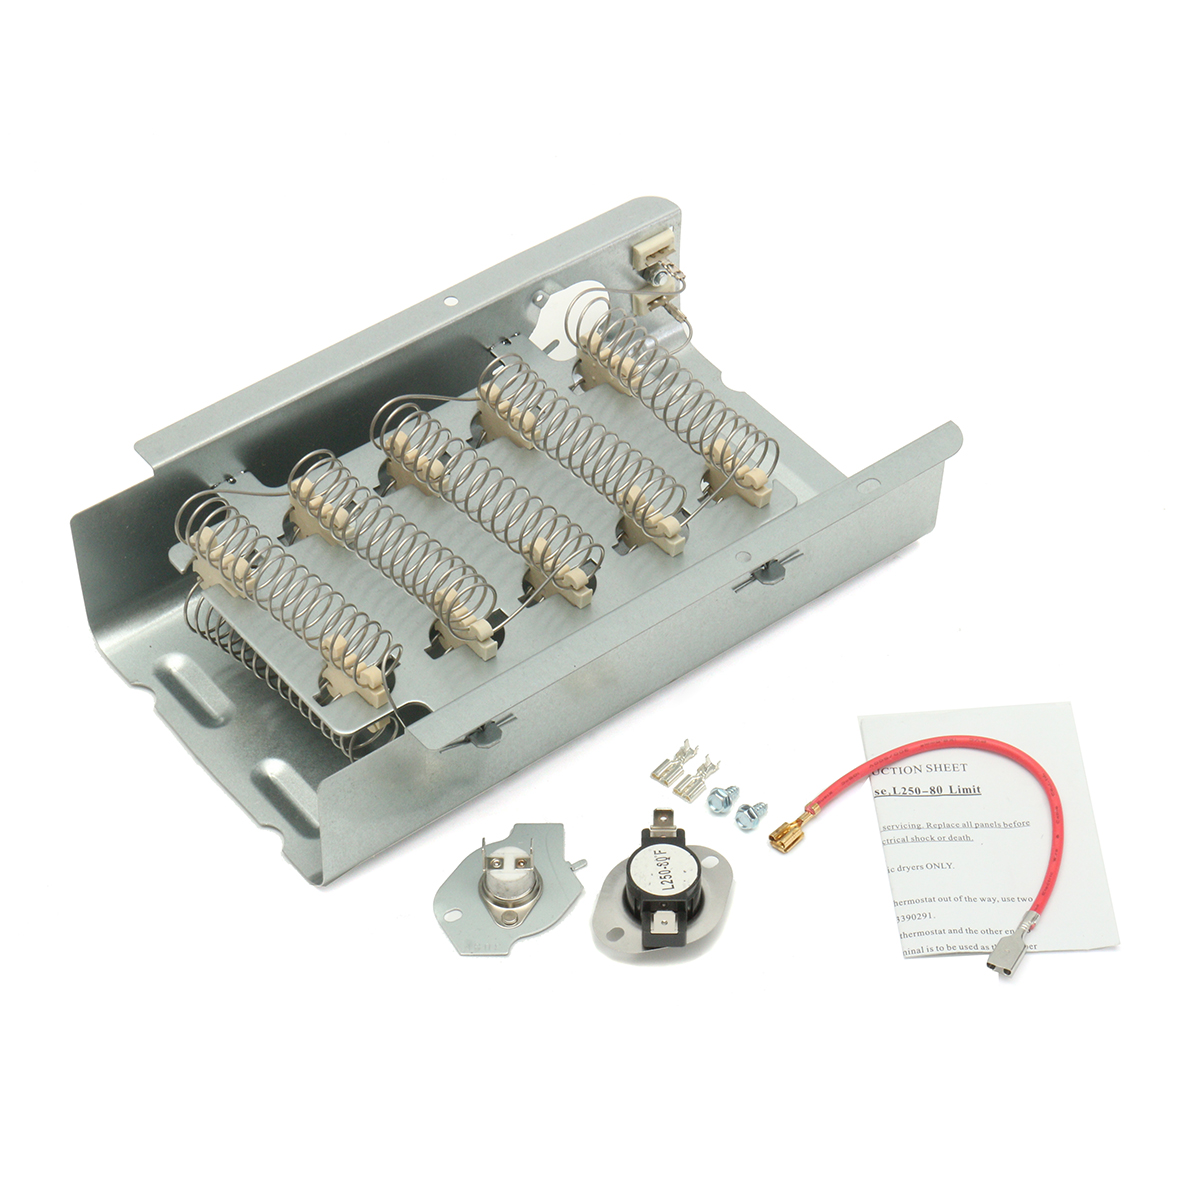 kenmore dryer operating thermostat 2001 ford focus fuse diagram 3403585 heating element kit for whirlpool